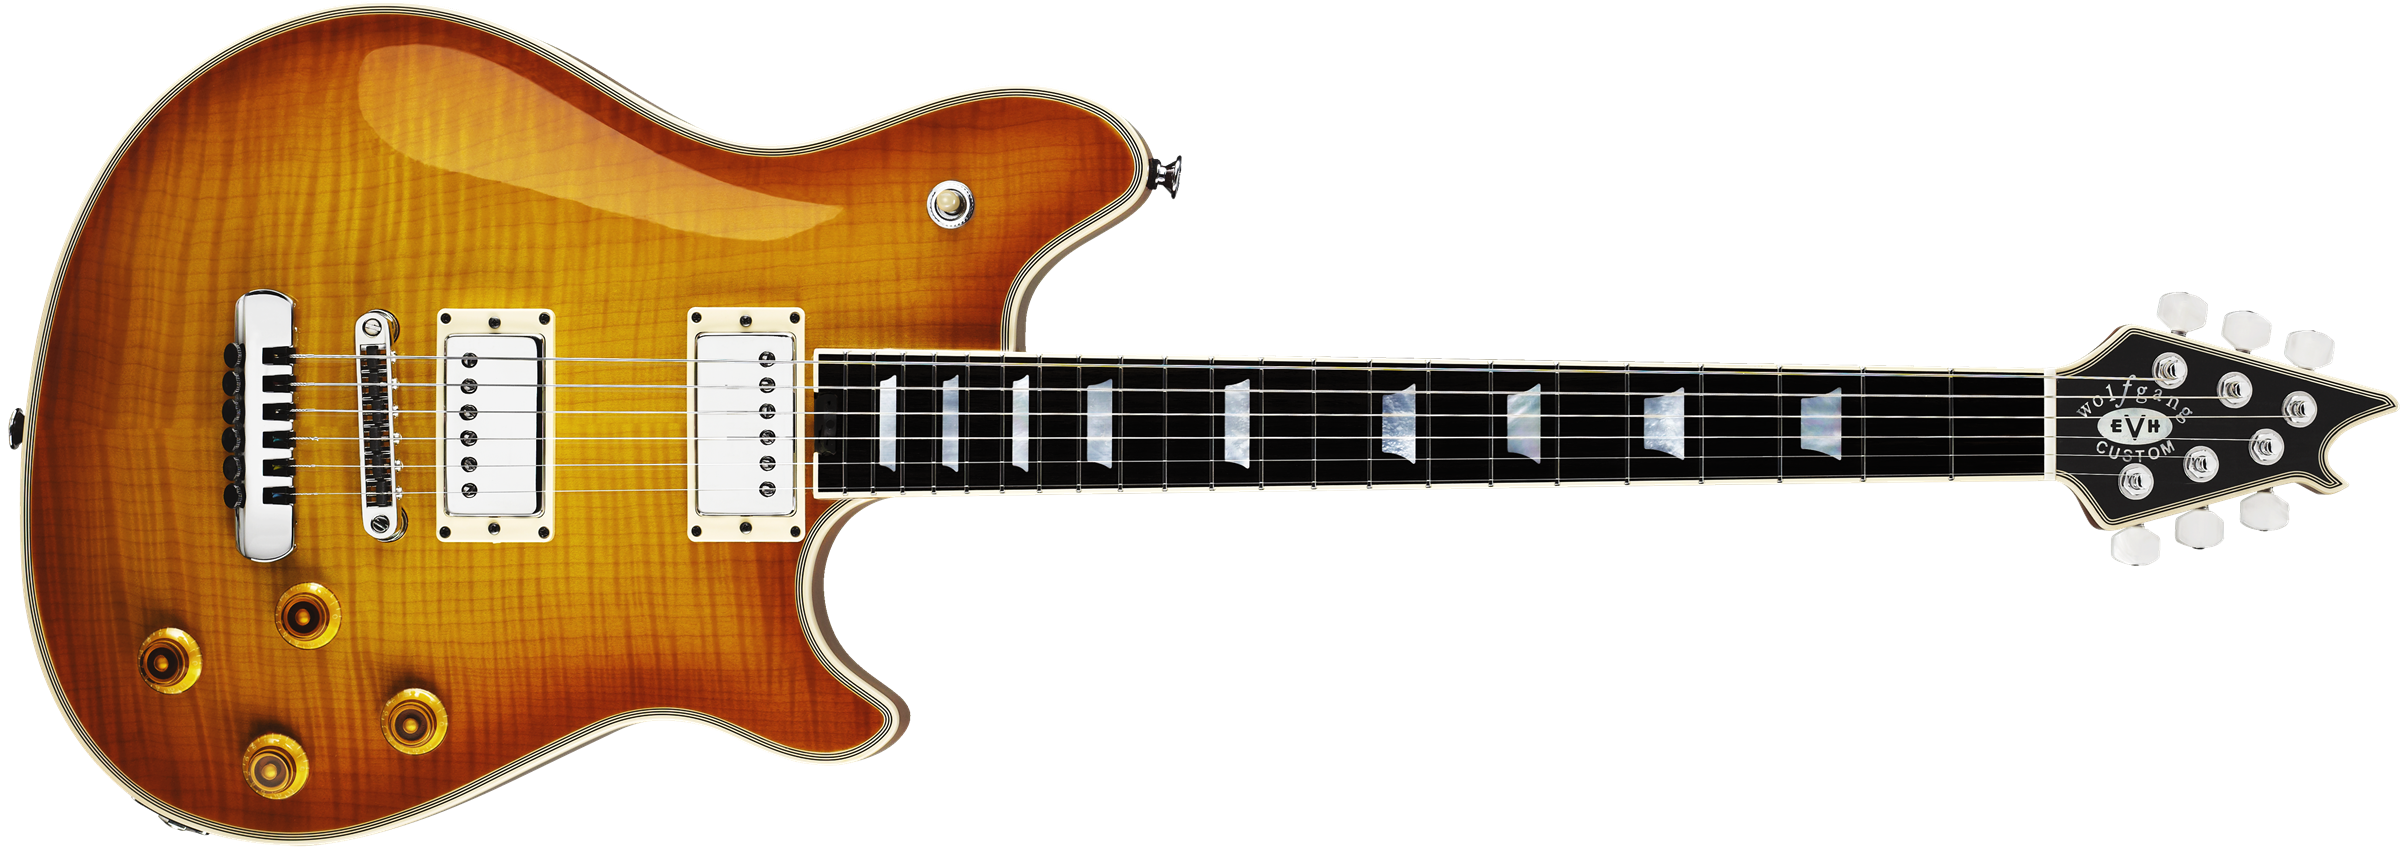 Wolfgang® USA Custom, Ebony Fingerboard, Cherry Burst